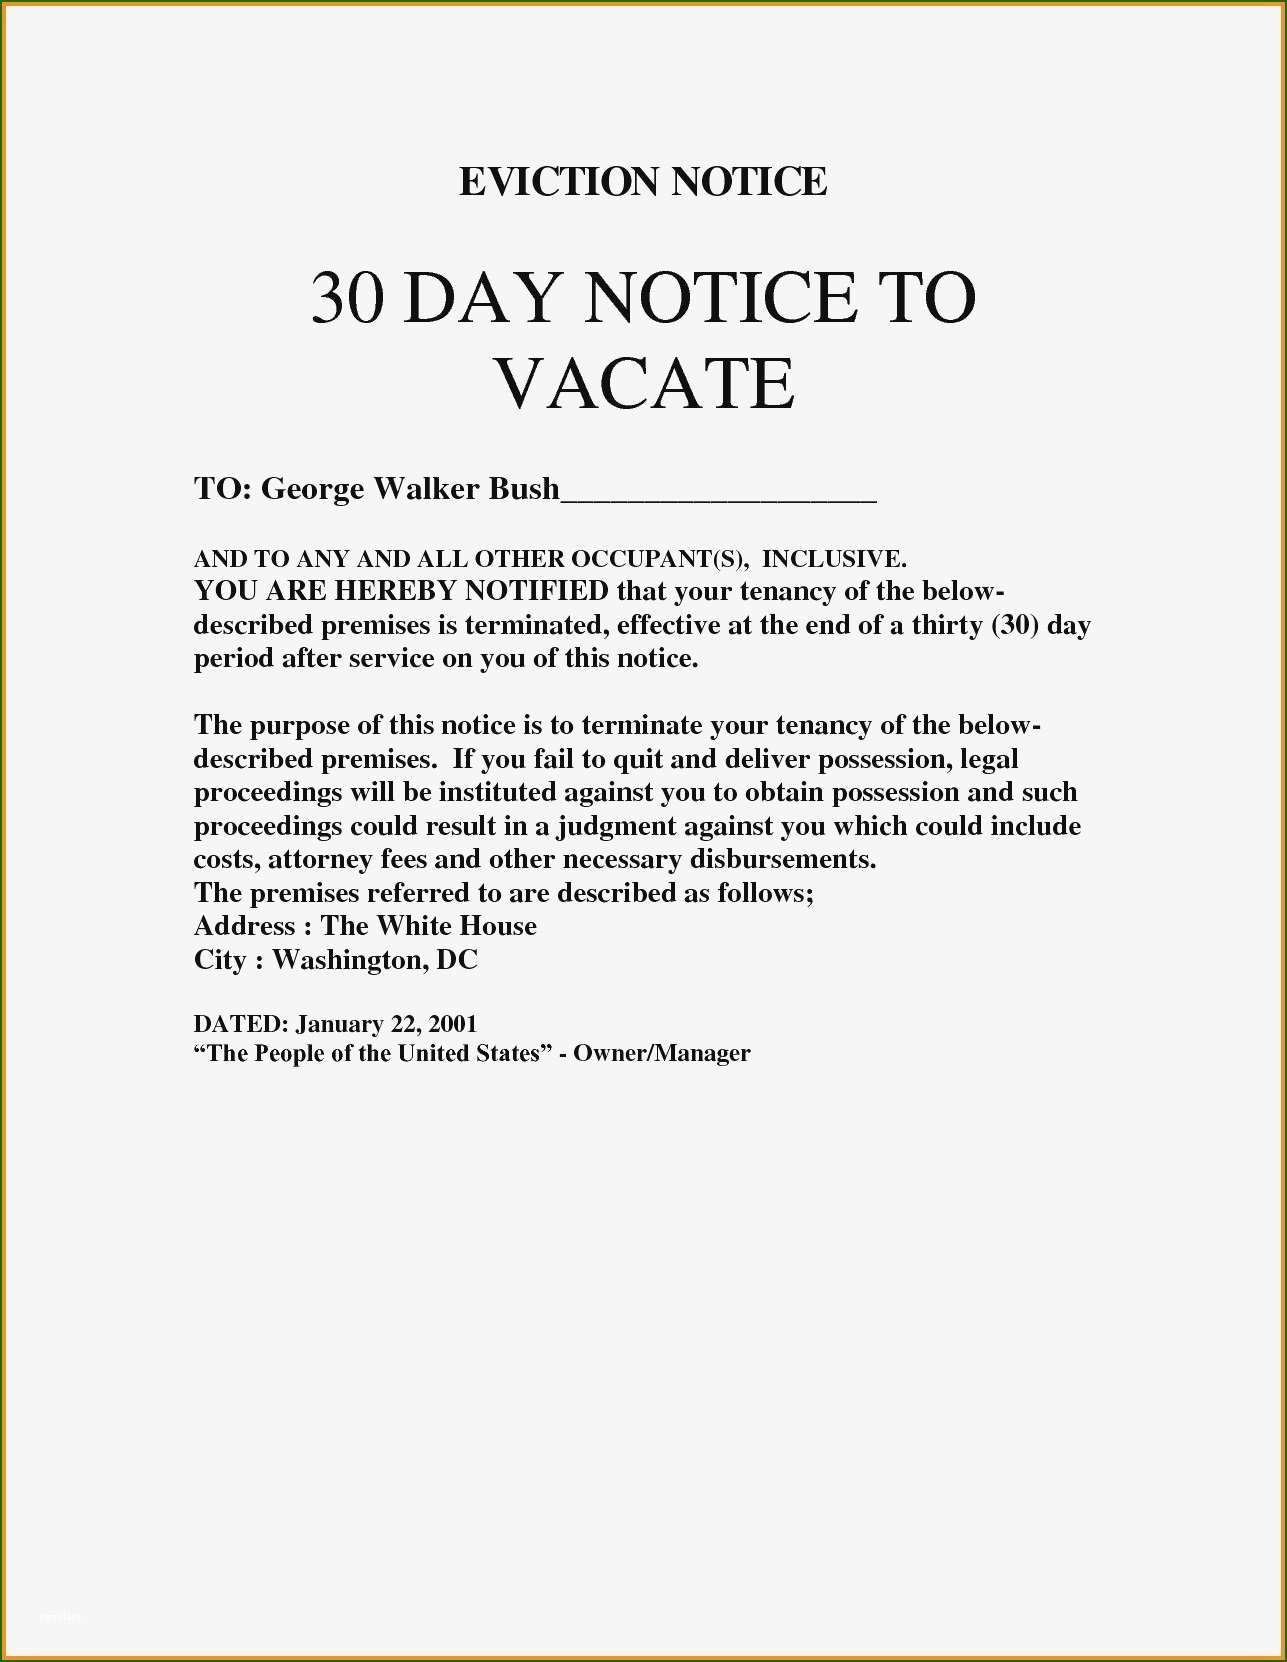 14 Phenomenal Nc Eviction Notice Template 30 Day Eviction Notice Eviction Notice Letter Templates Free